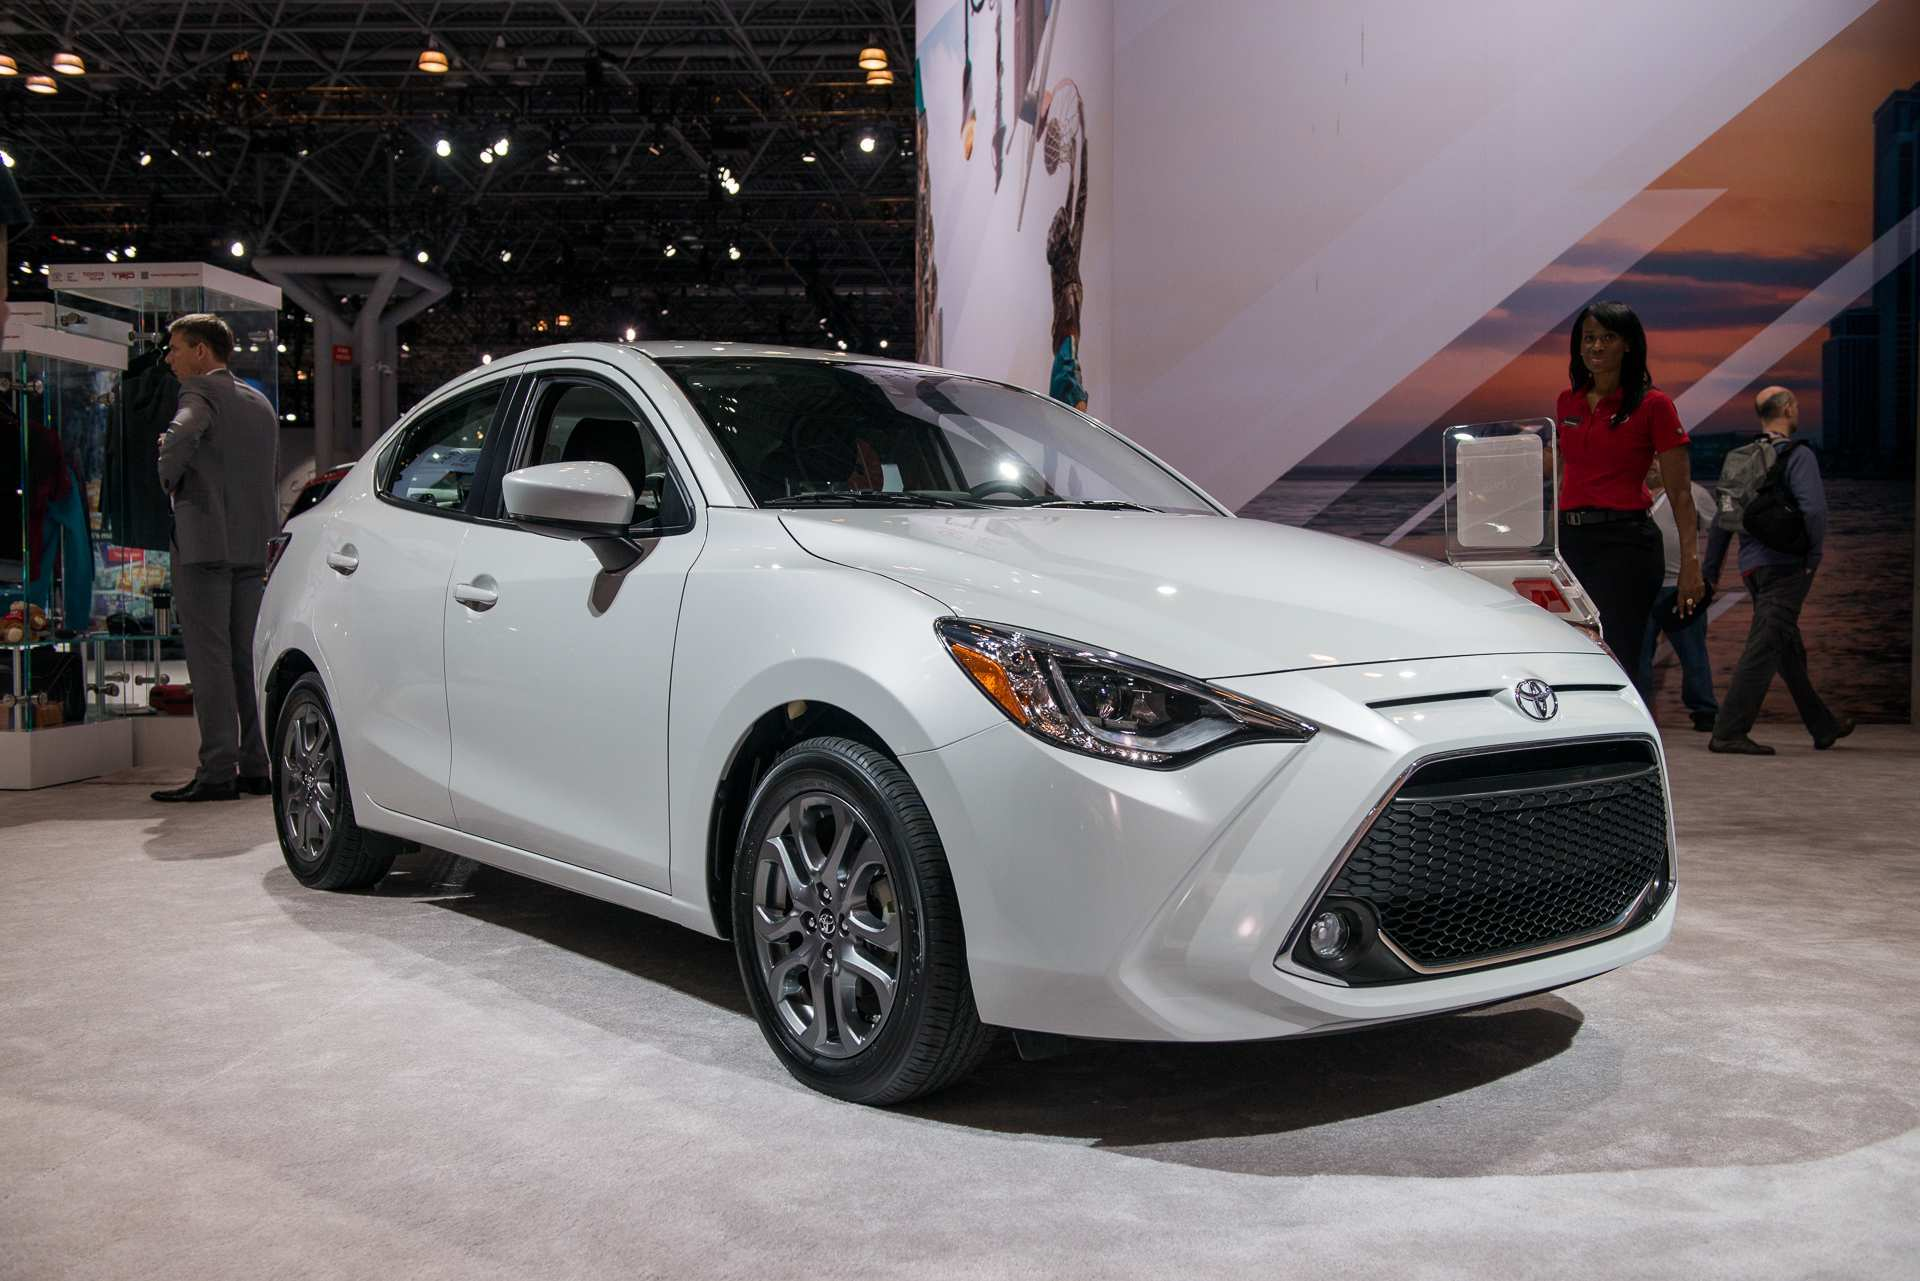 29 New Toyota Yaris 2019 Europe Price